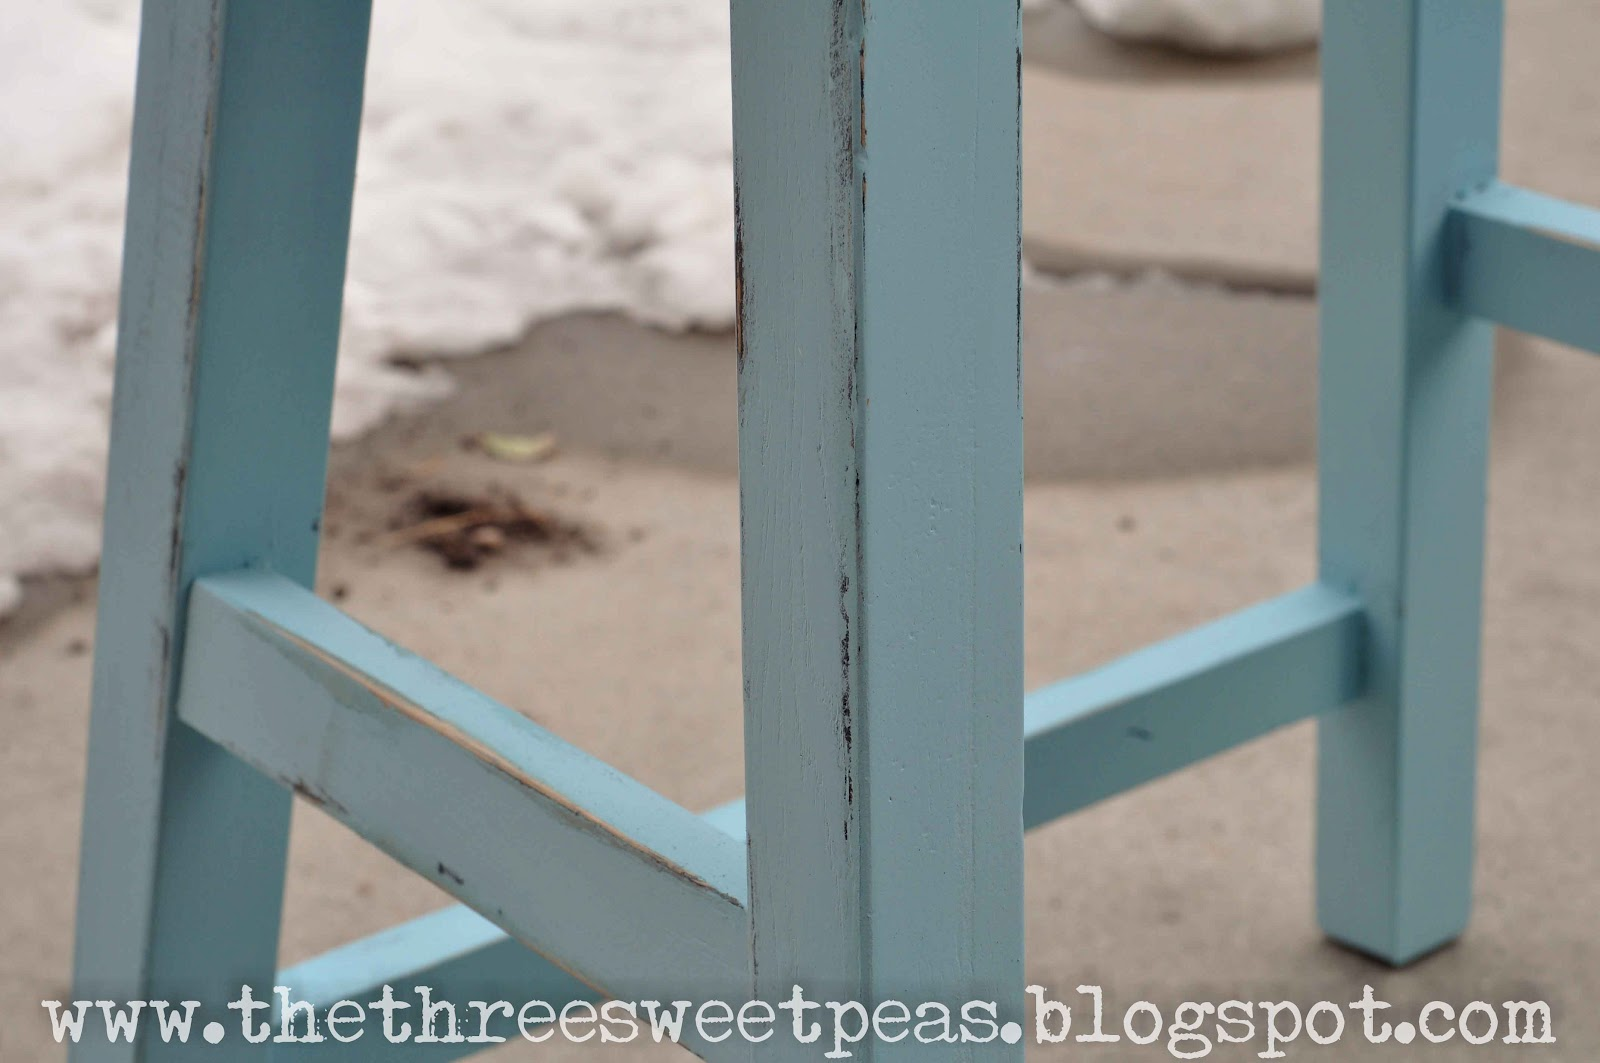 Swell The Three Sweet Peas Counter Stool Redo Before And After Dailytribune Chair Design For Home Dailytribuneorg